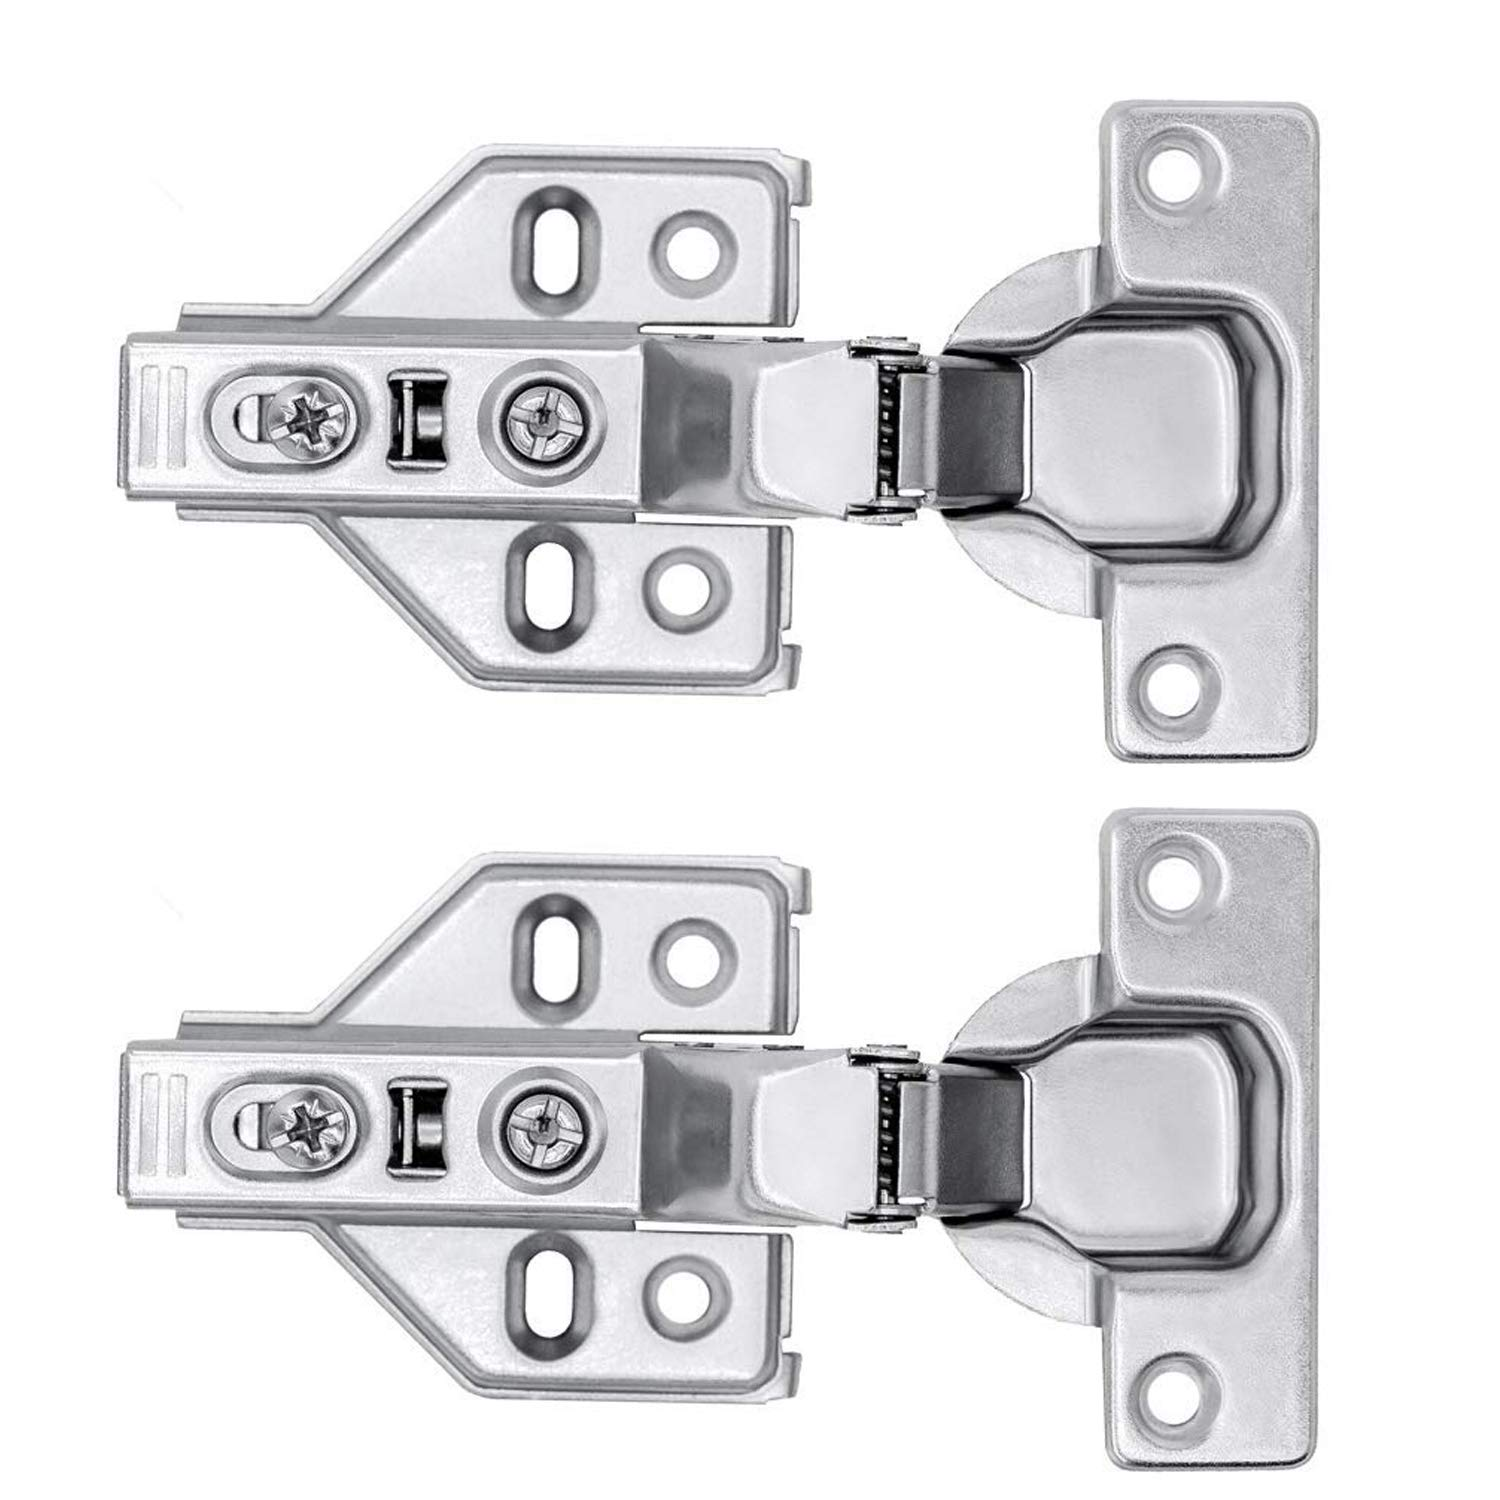 Autoly 2Pcs Cabinet Insert-Type Concealed Hinges Detachable Hydraulic Buffer Hinges for Inside Installtion